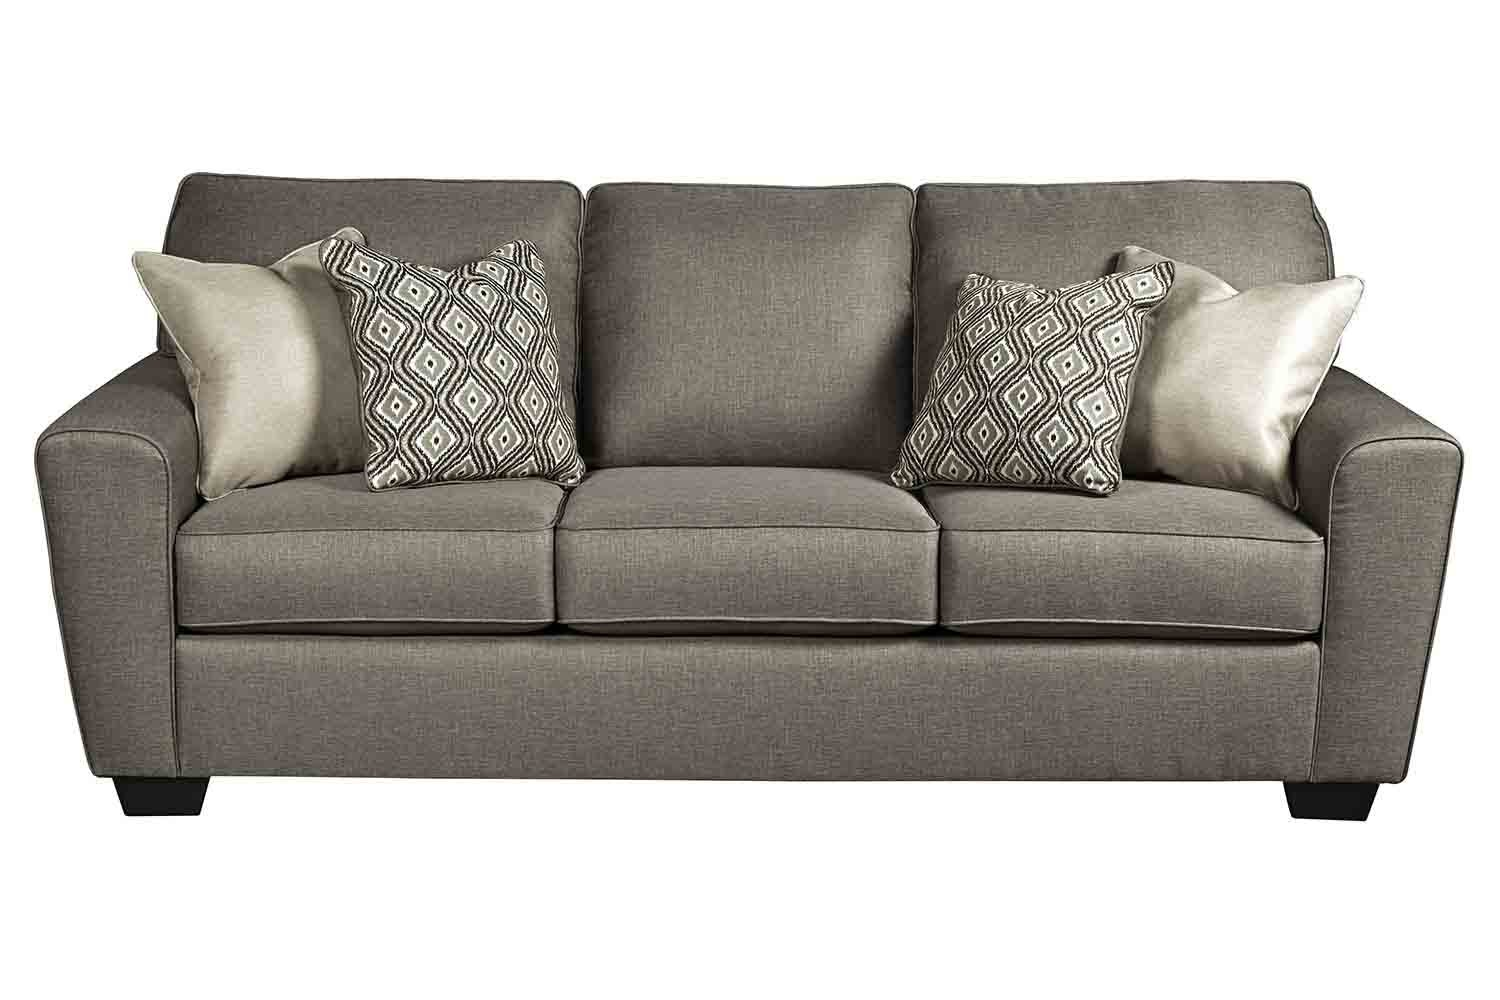 Corduroy 3 Seater Sofa Sofas Couches Mor Furniture For Less